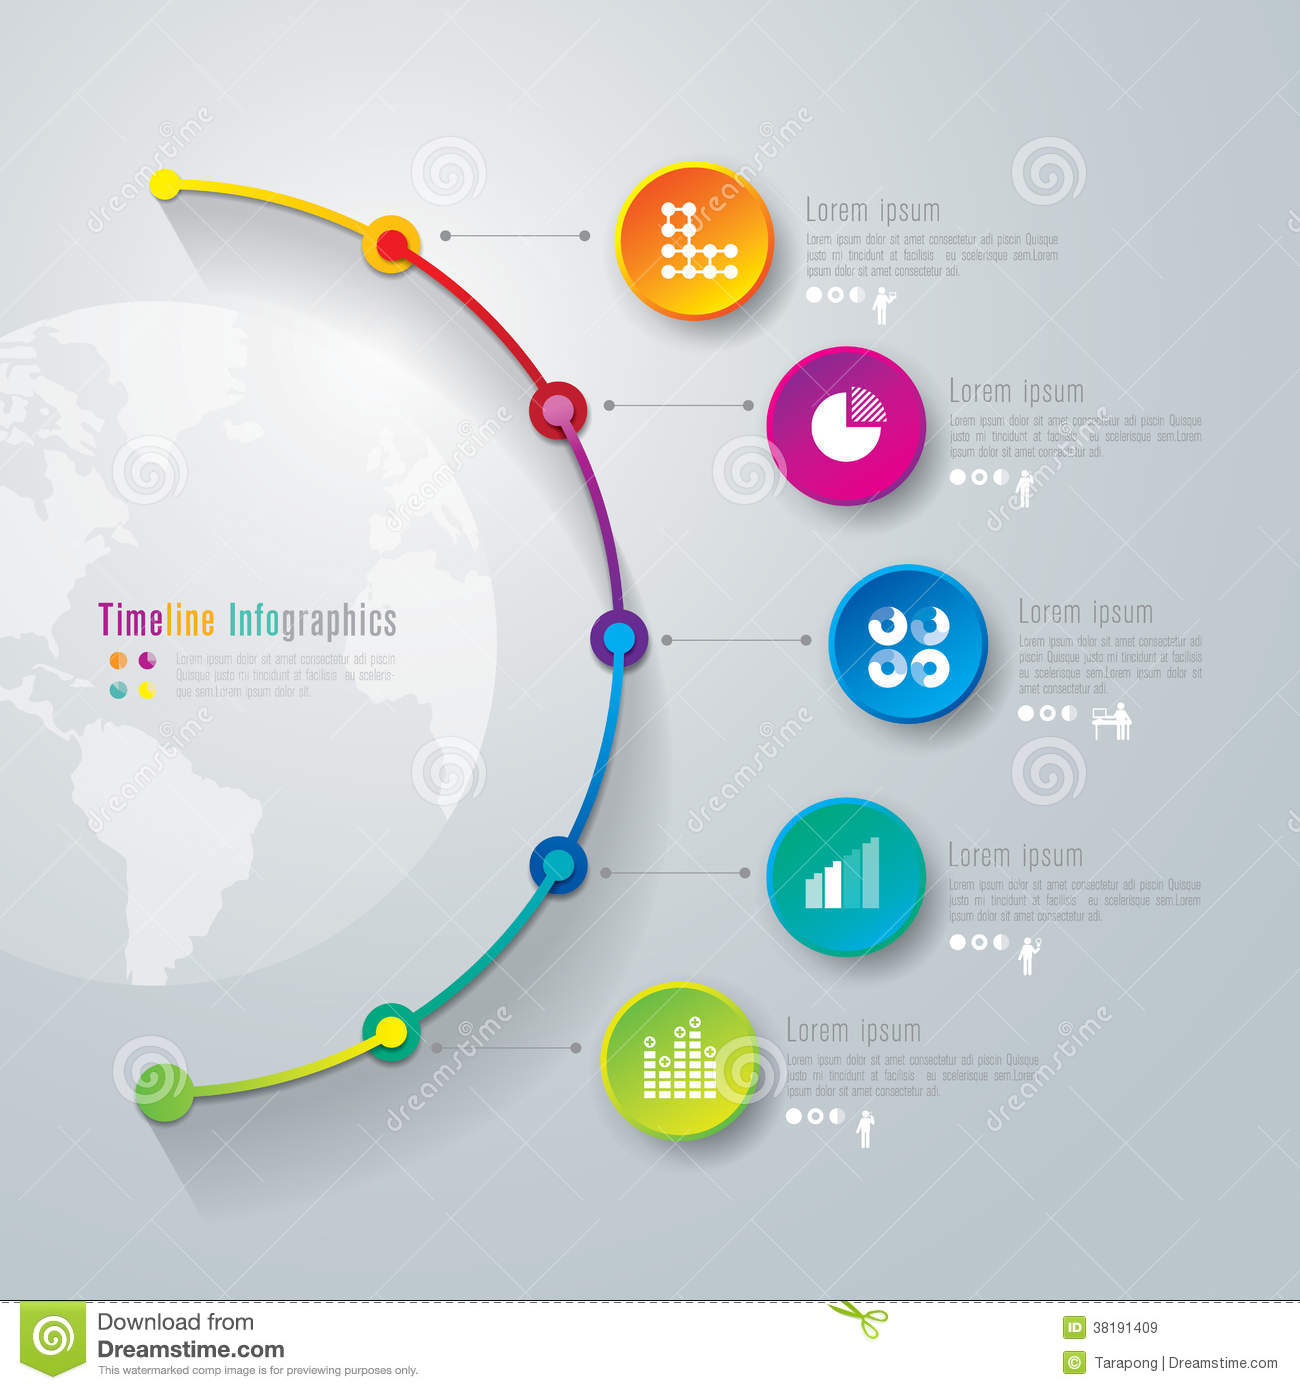 Free Templates For Timelines Yelomphonecompany